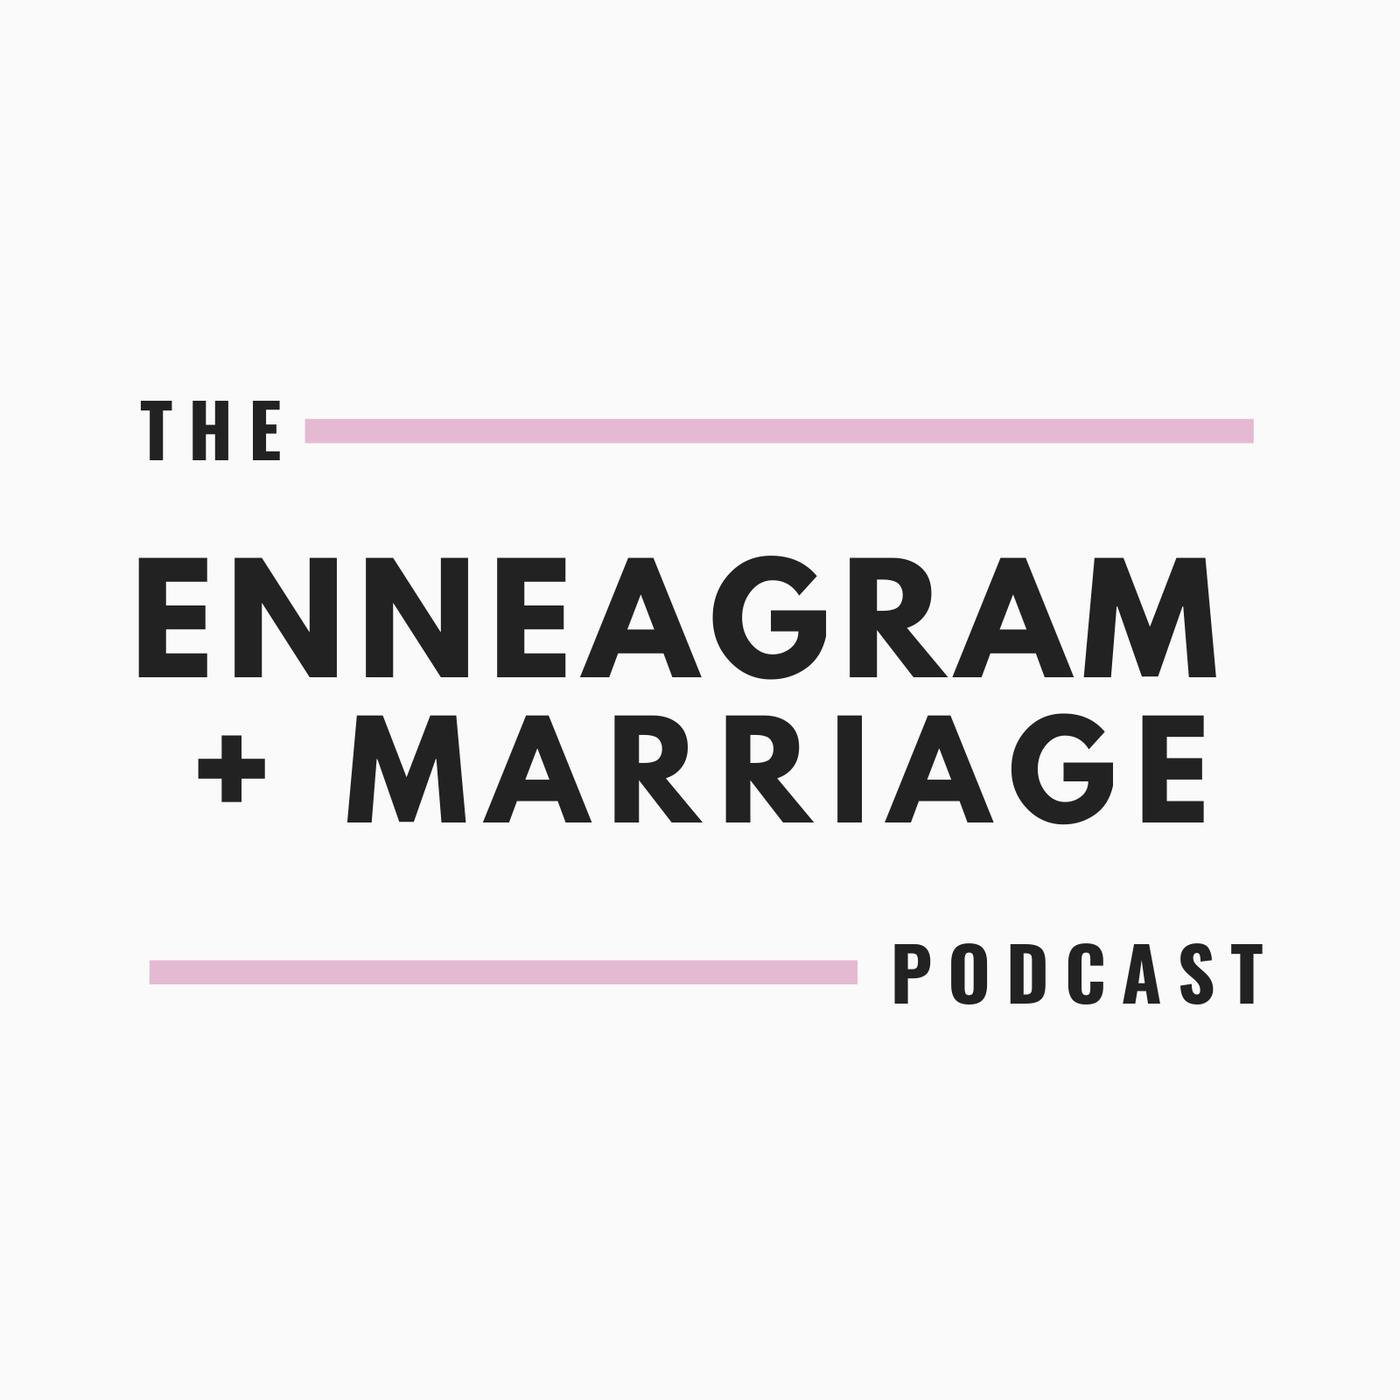 The Enneagram + Marriage Podcast